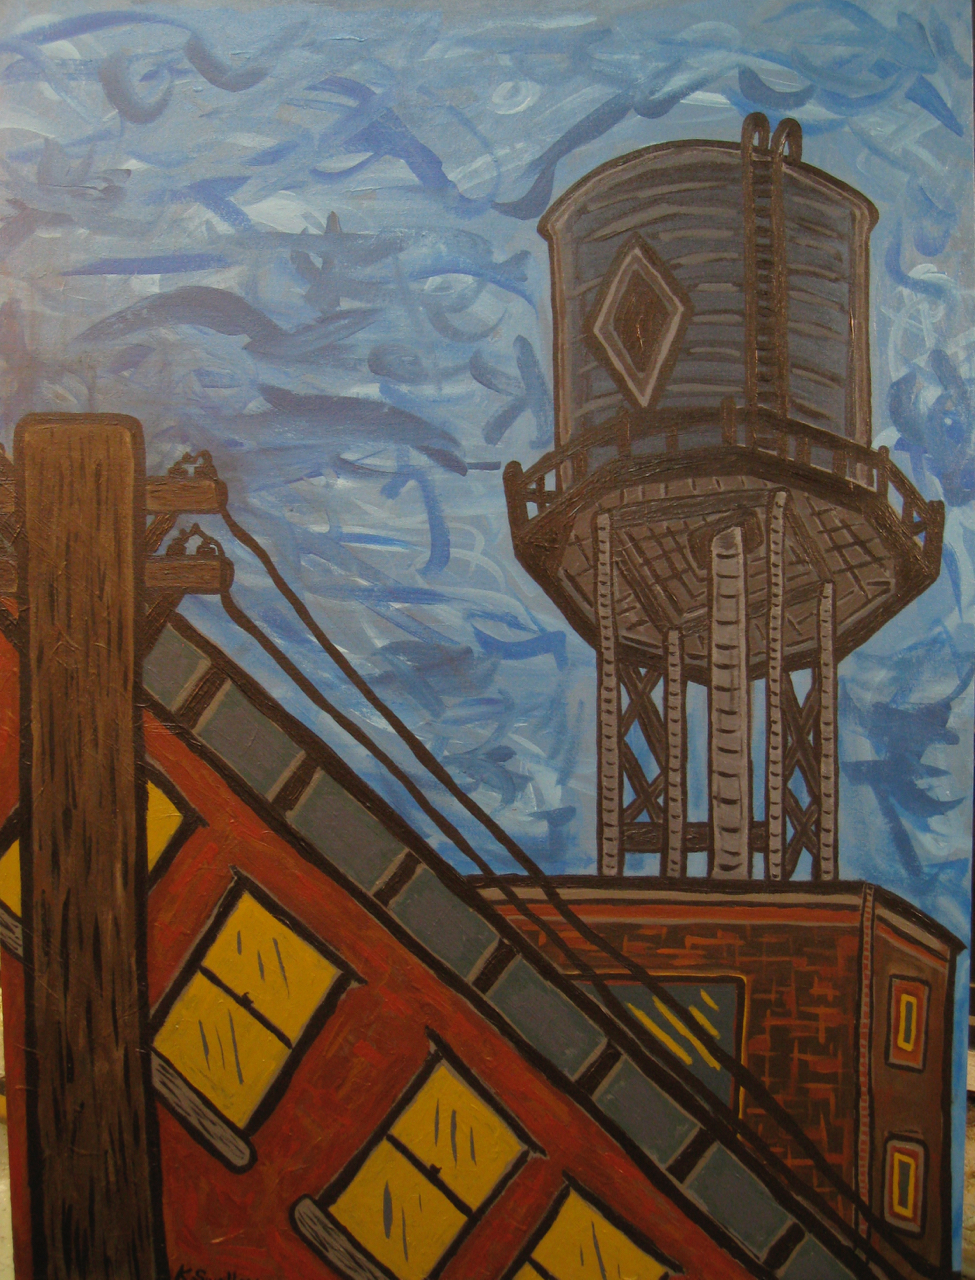 Watertank Blues, acrylic on canvas, 36x48, 2008, AVAILABLE